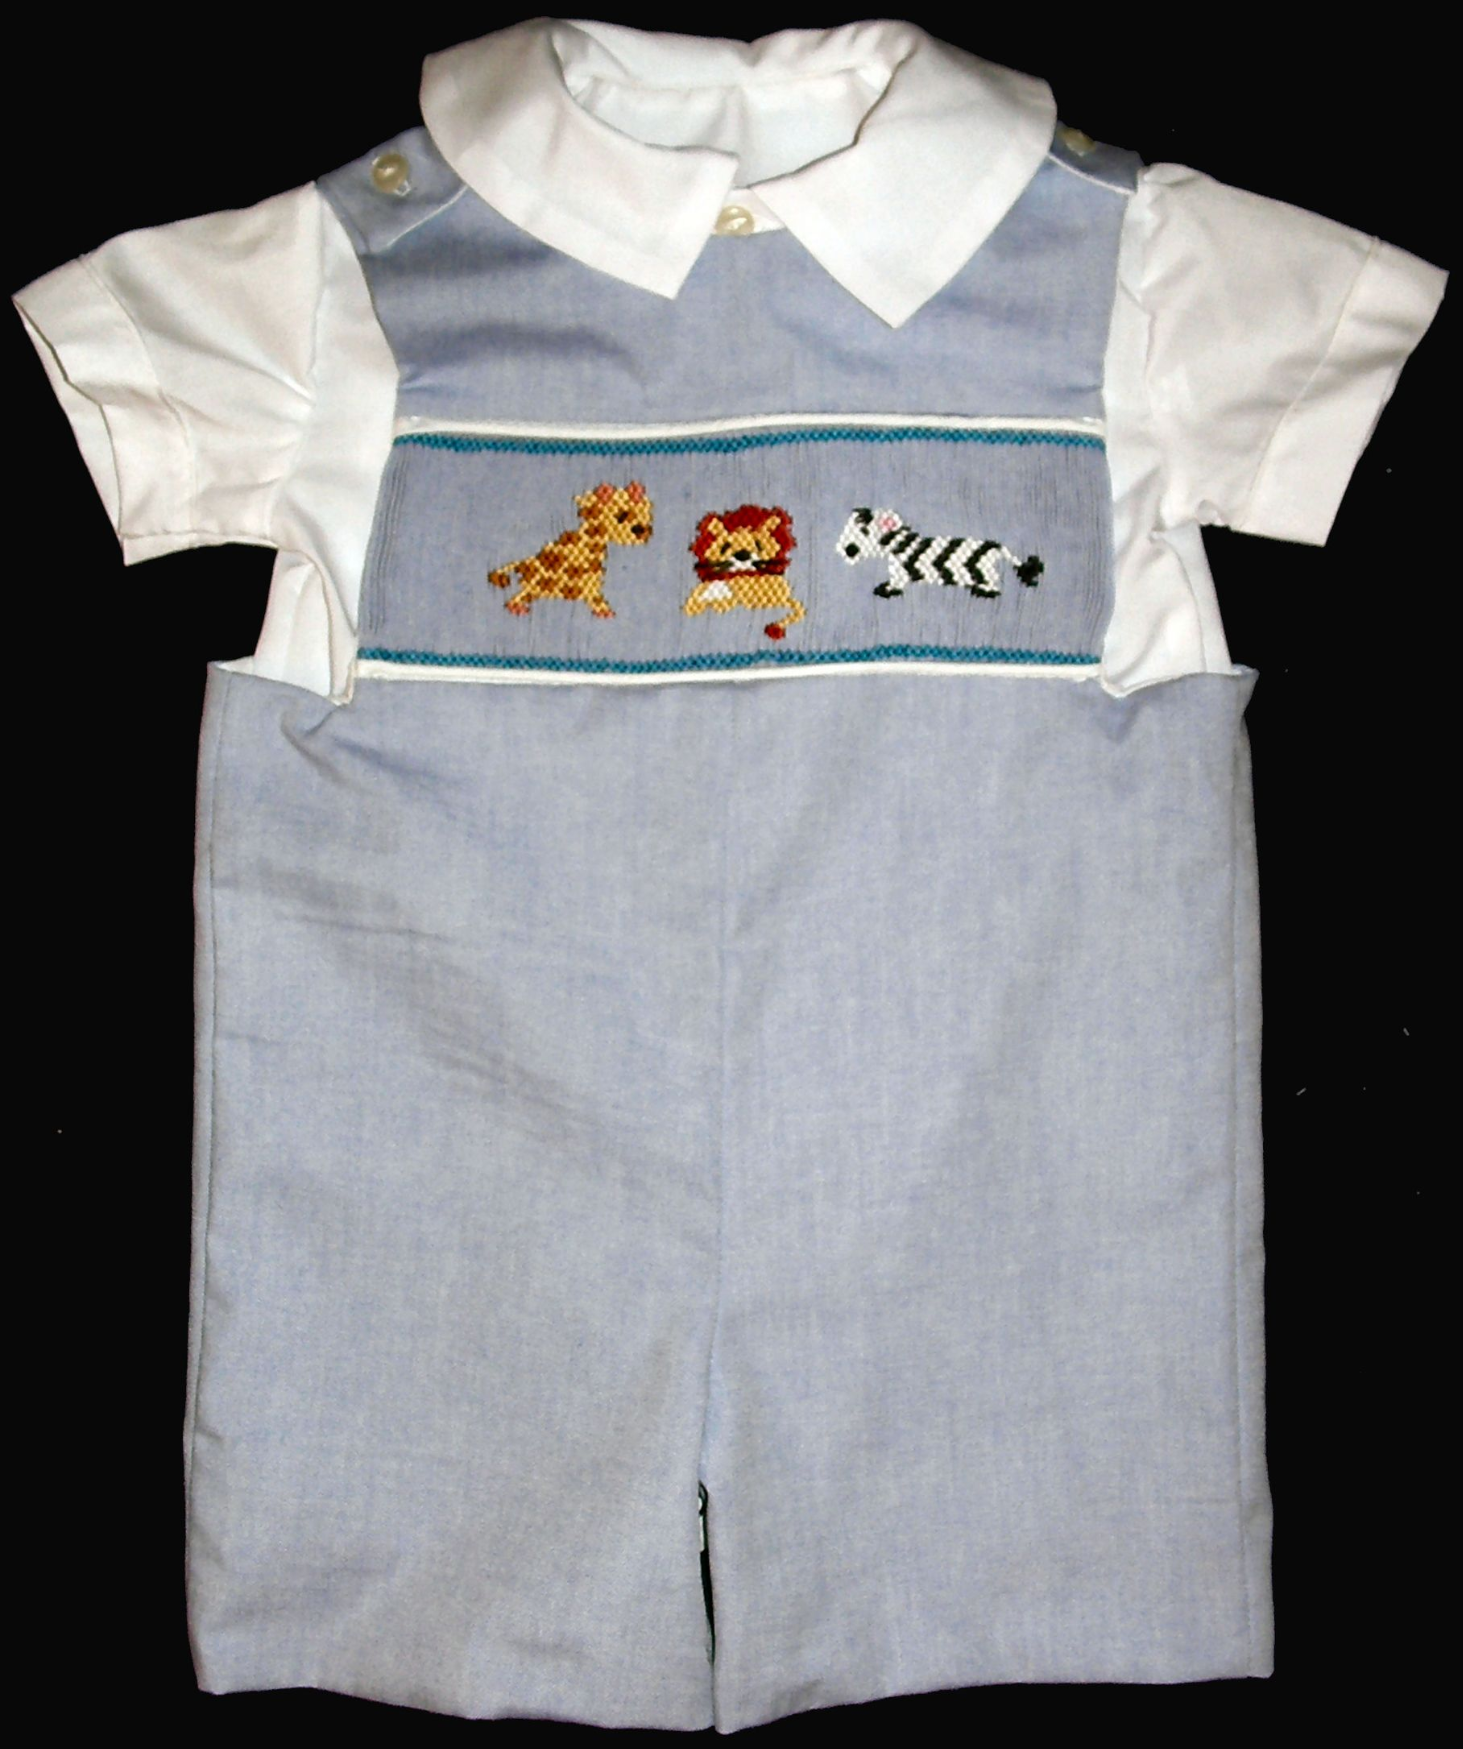 Giraffe Lion Zebra Boys Blue Shortall - Romper Shirt Set #1